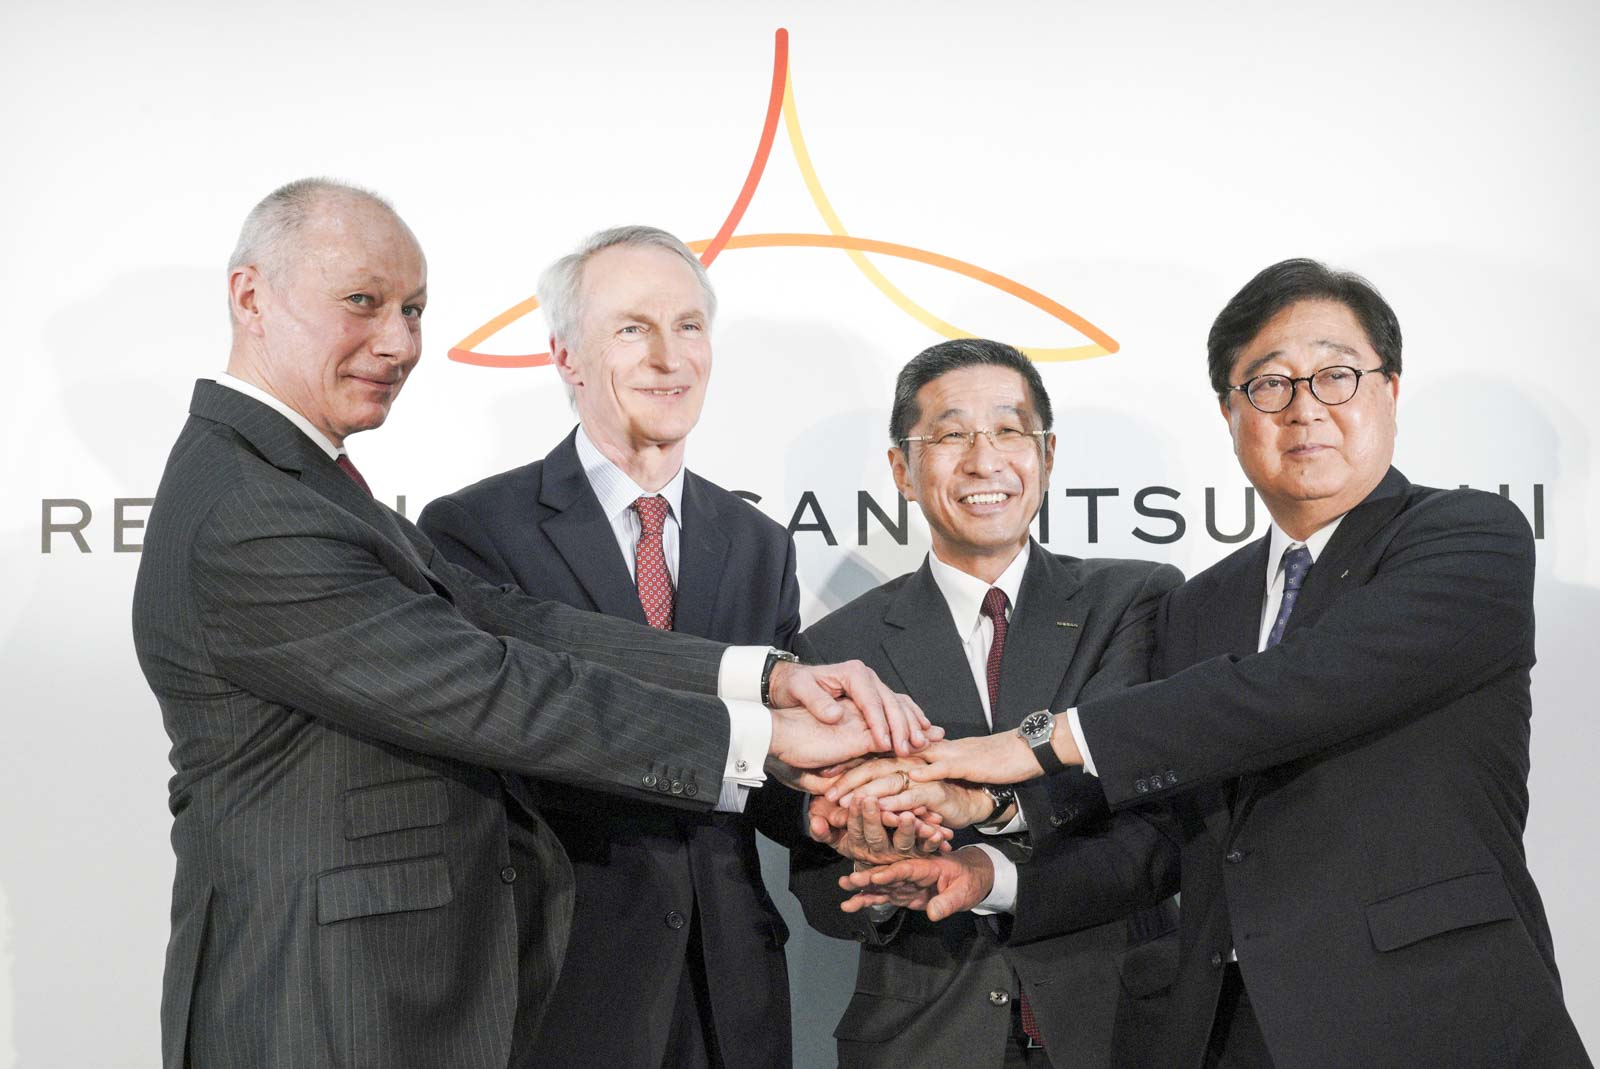 Renault, Nissan and Mitsubishi Chart Out Revised Alliance Business Plans